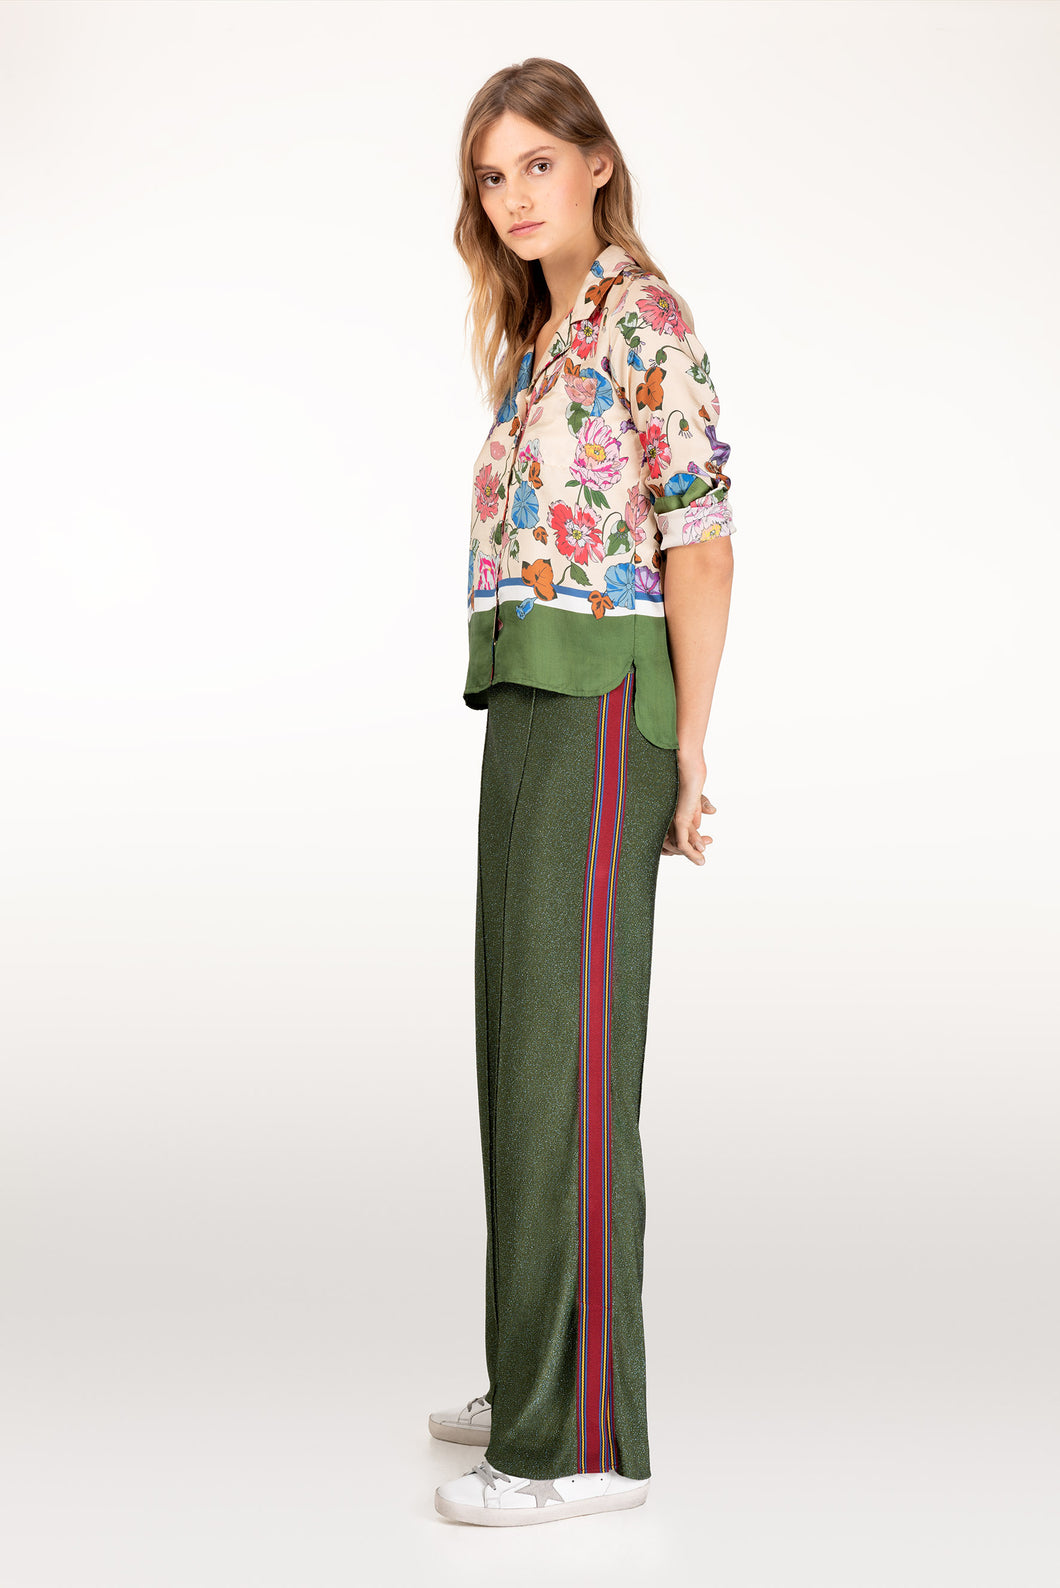 Cressida green lurex trousers